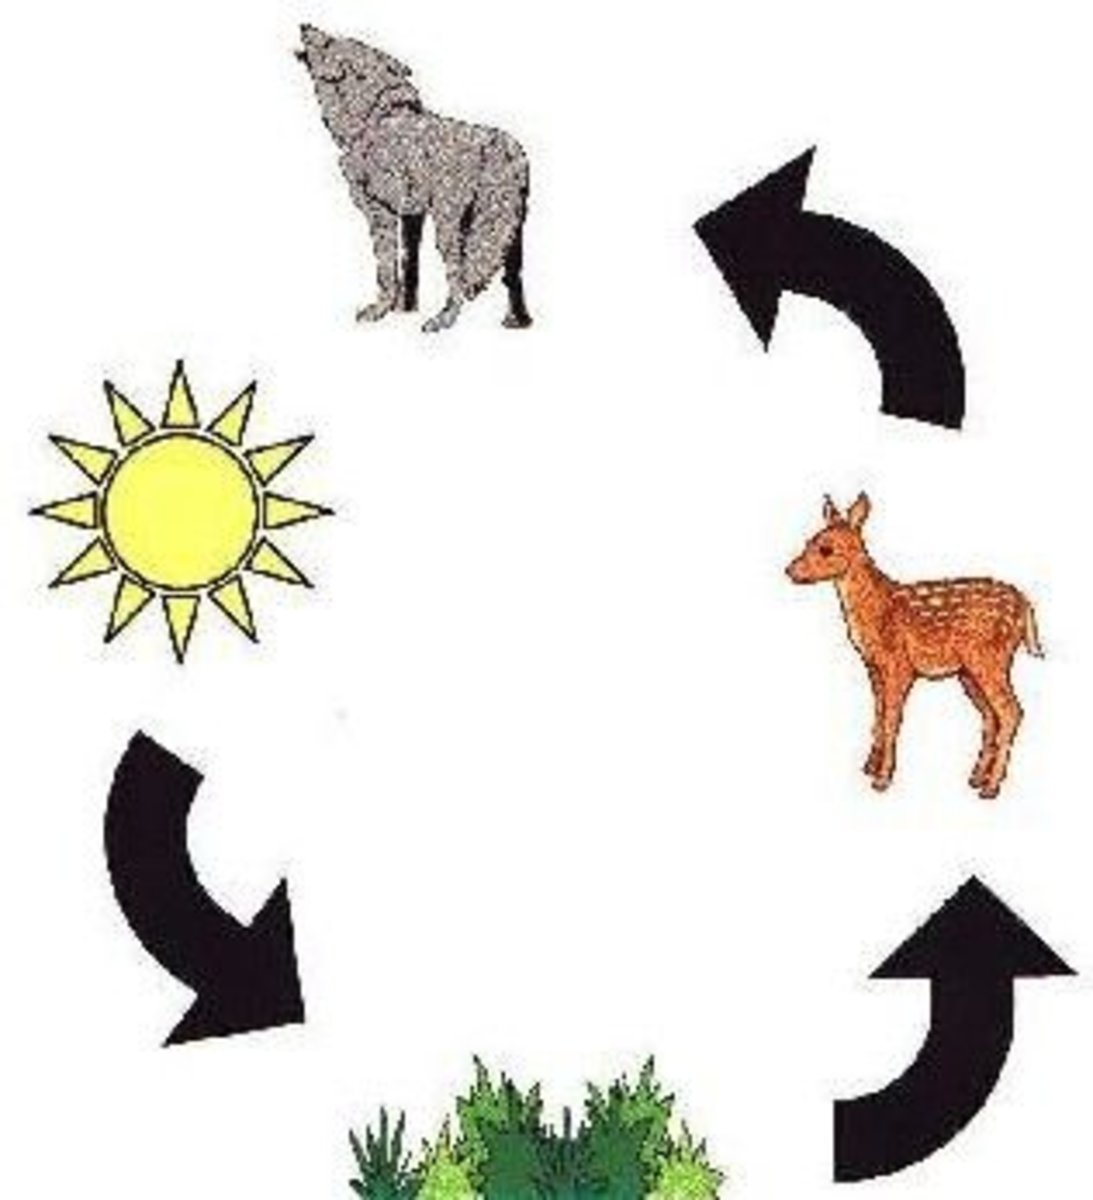 Esl Lessons Using Food Chains Webs And Pyramids In